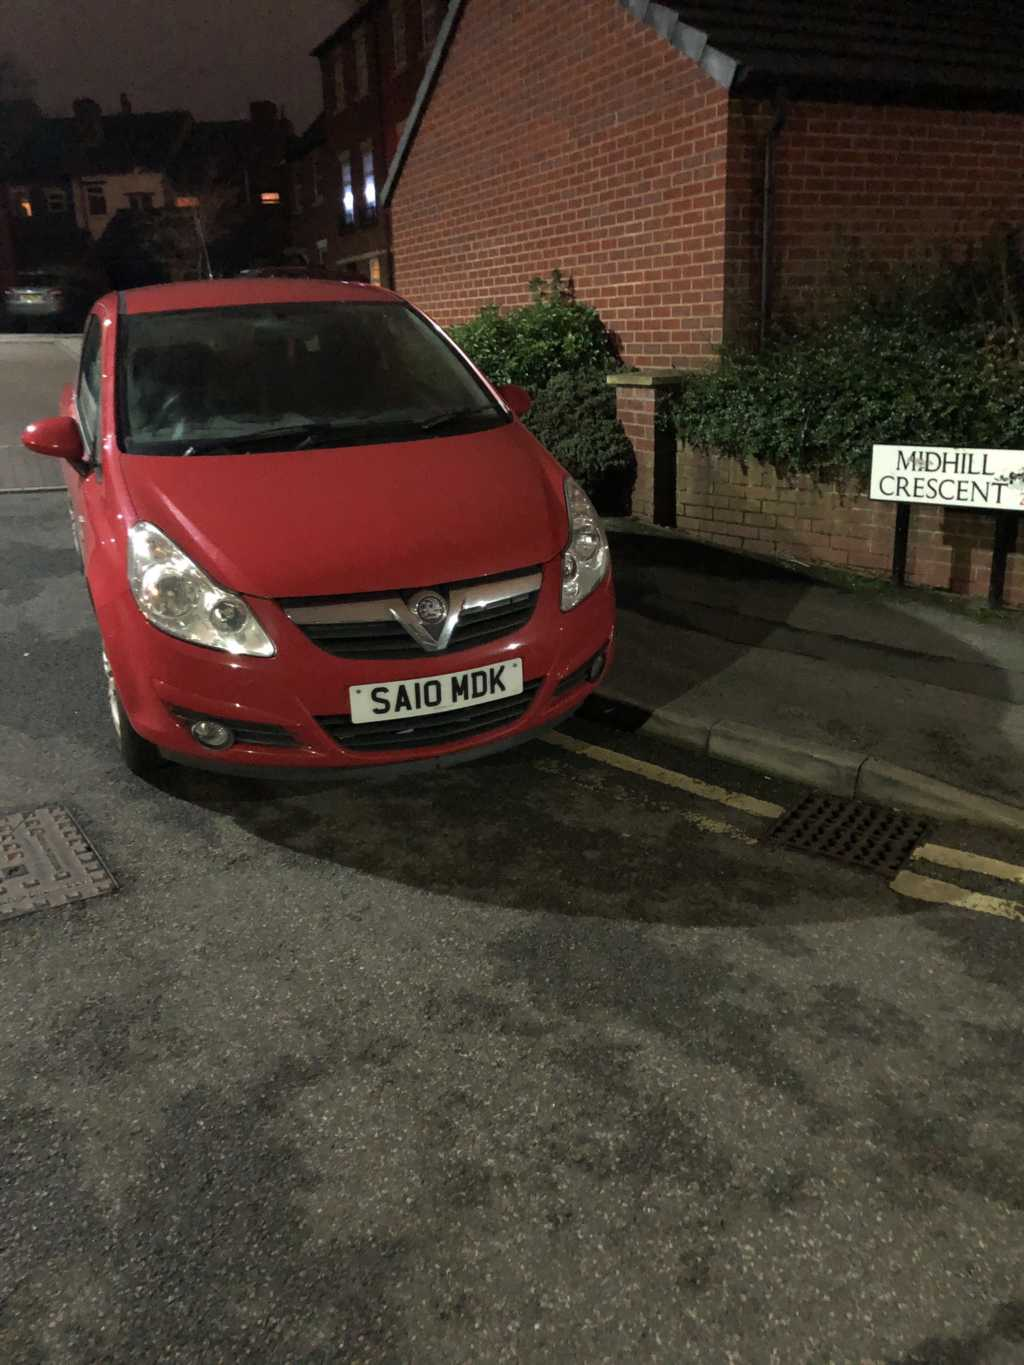 SA10 MDK is an Inconsiderate Parker